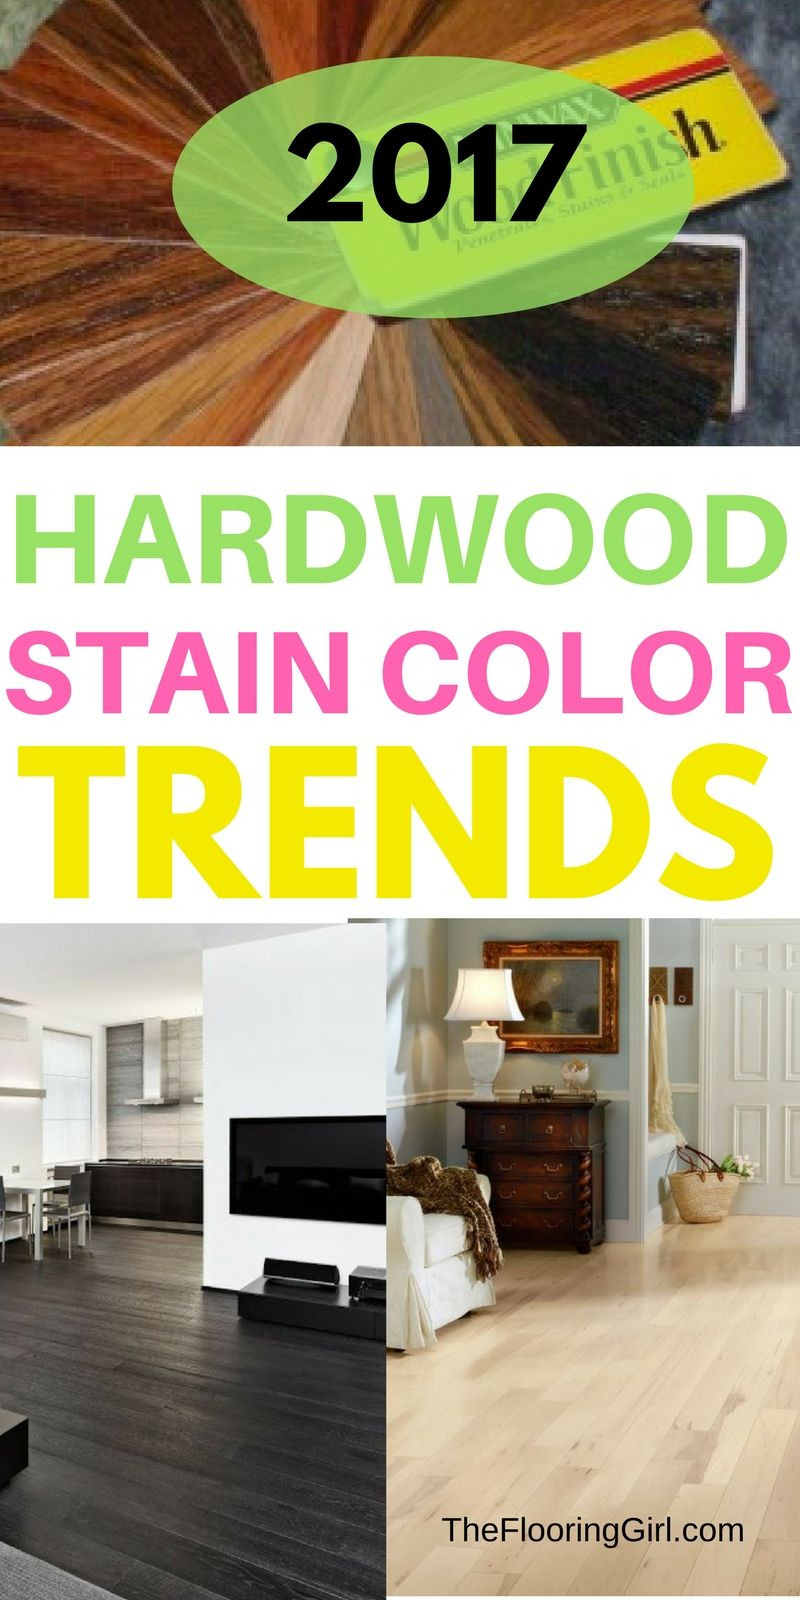 furniture colors for dark hardwood floors of hardwood flooring stain color trends 2018 more from the flooring inside hardwood flooring stain color trends for 2017 hardwood colors that are in style theflooringgirl com